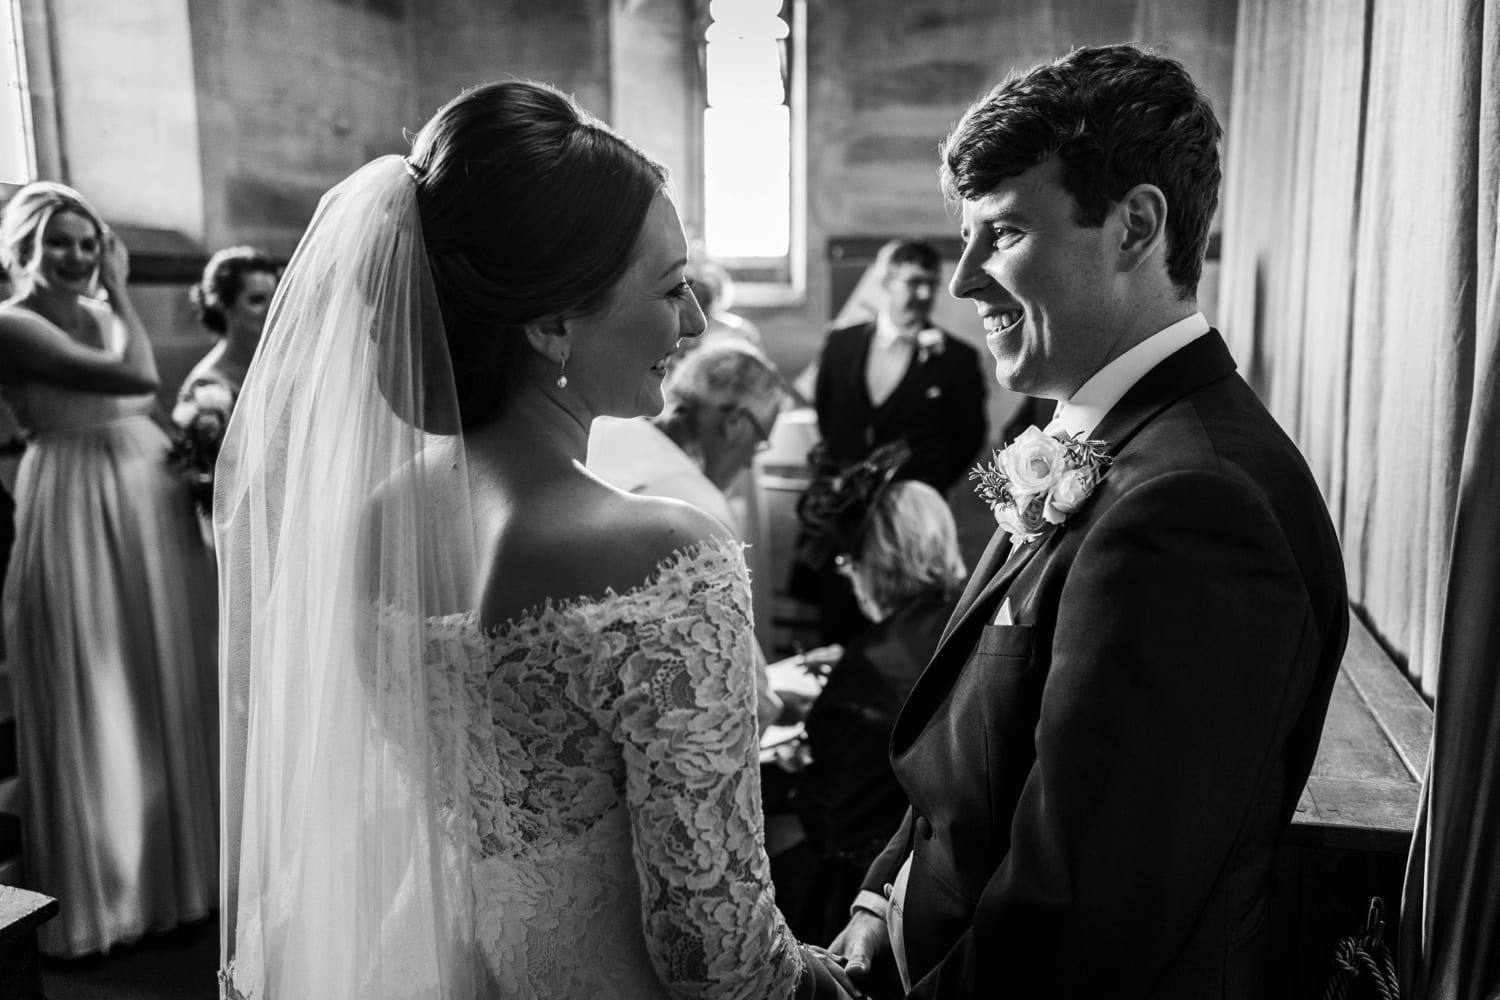 marriage ceremony at St David's Church in Miskin, South Wales